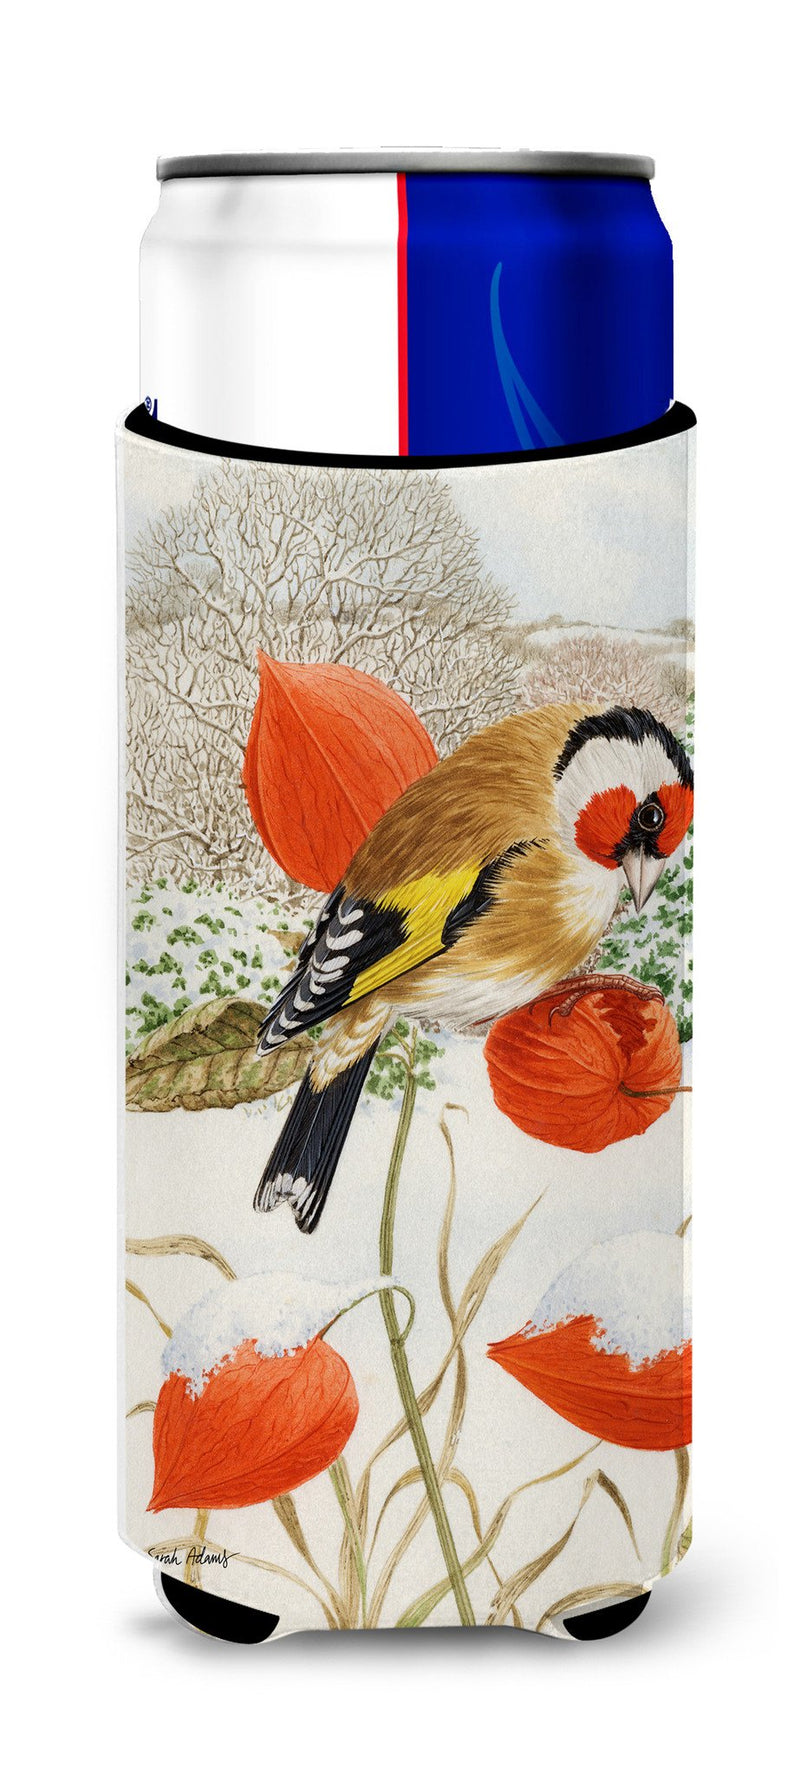 European Goldfinch Ultra Beverage Insulators for slim cans ASA2055MUK by Caroline's Treasures